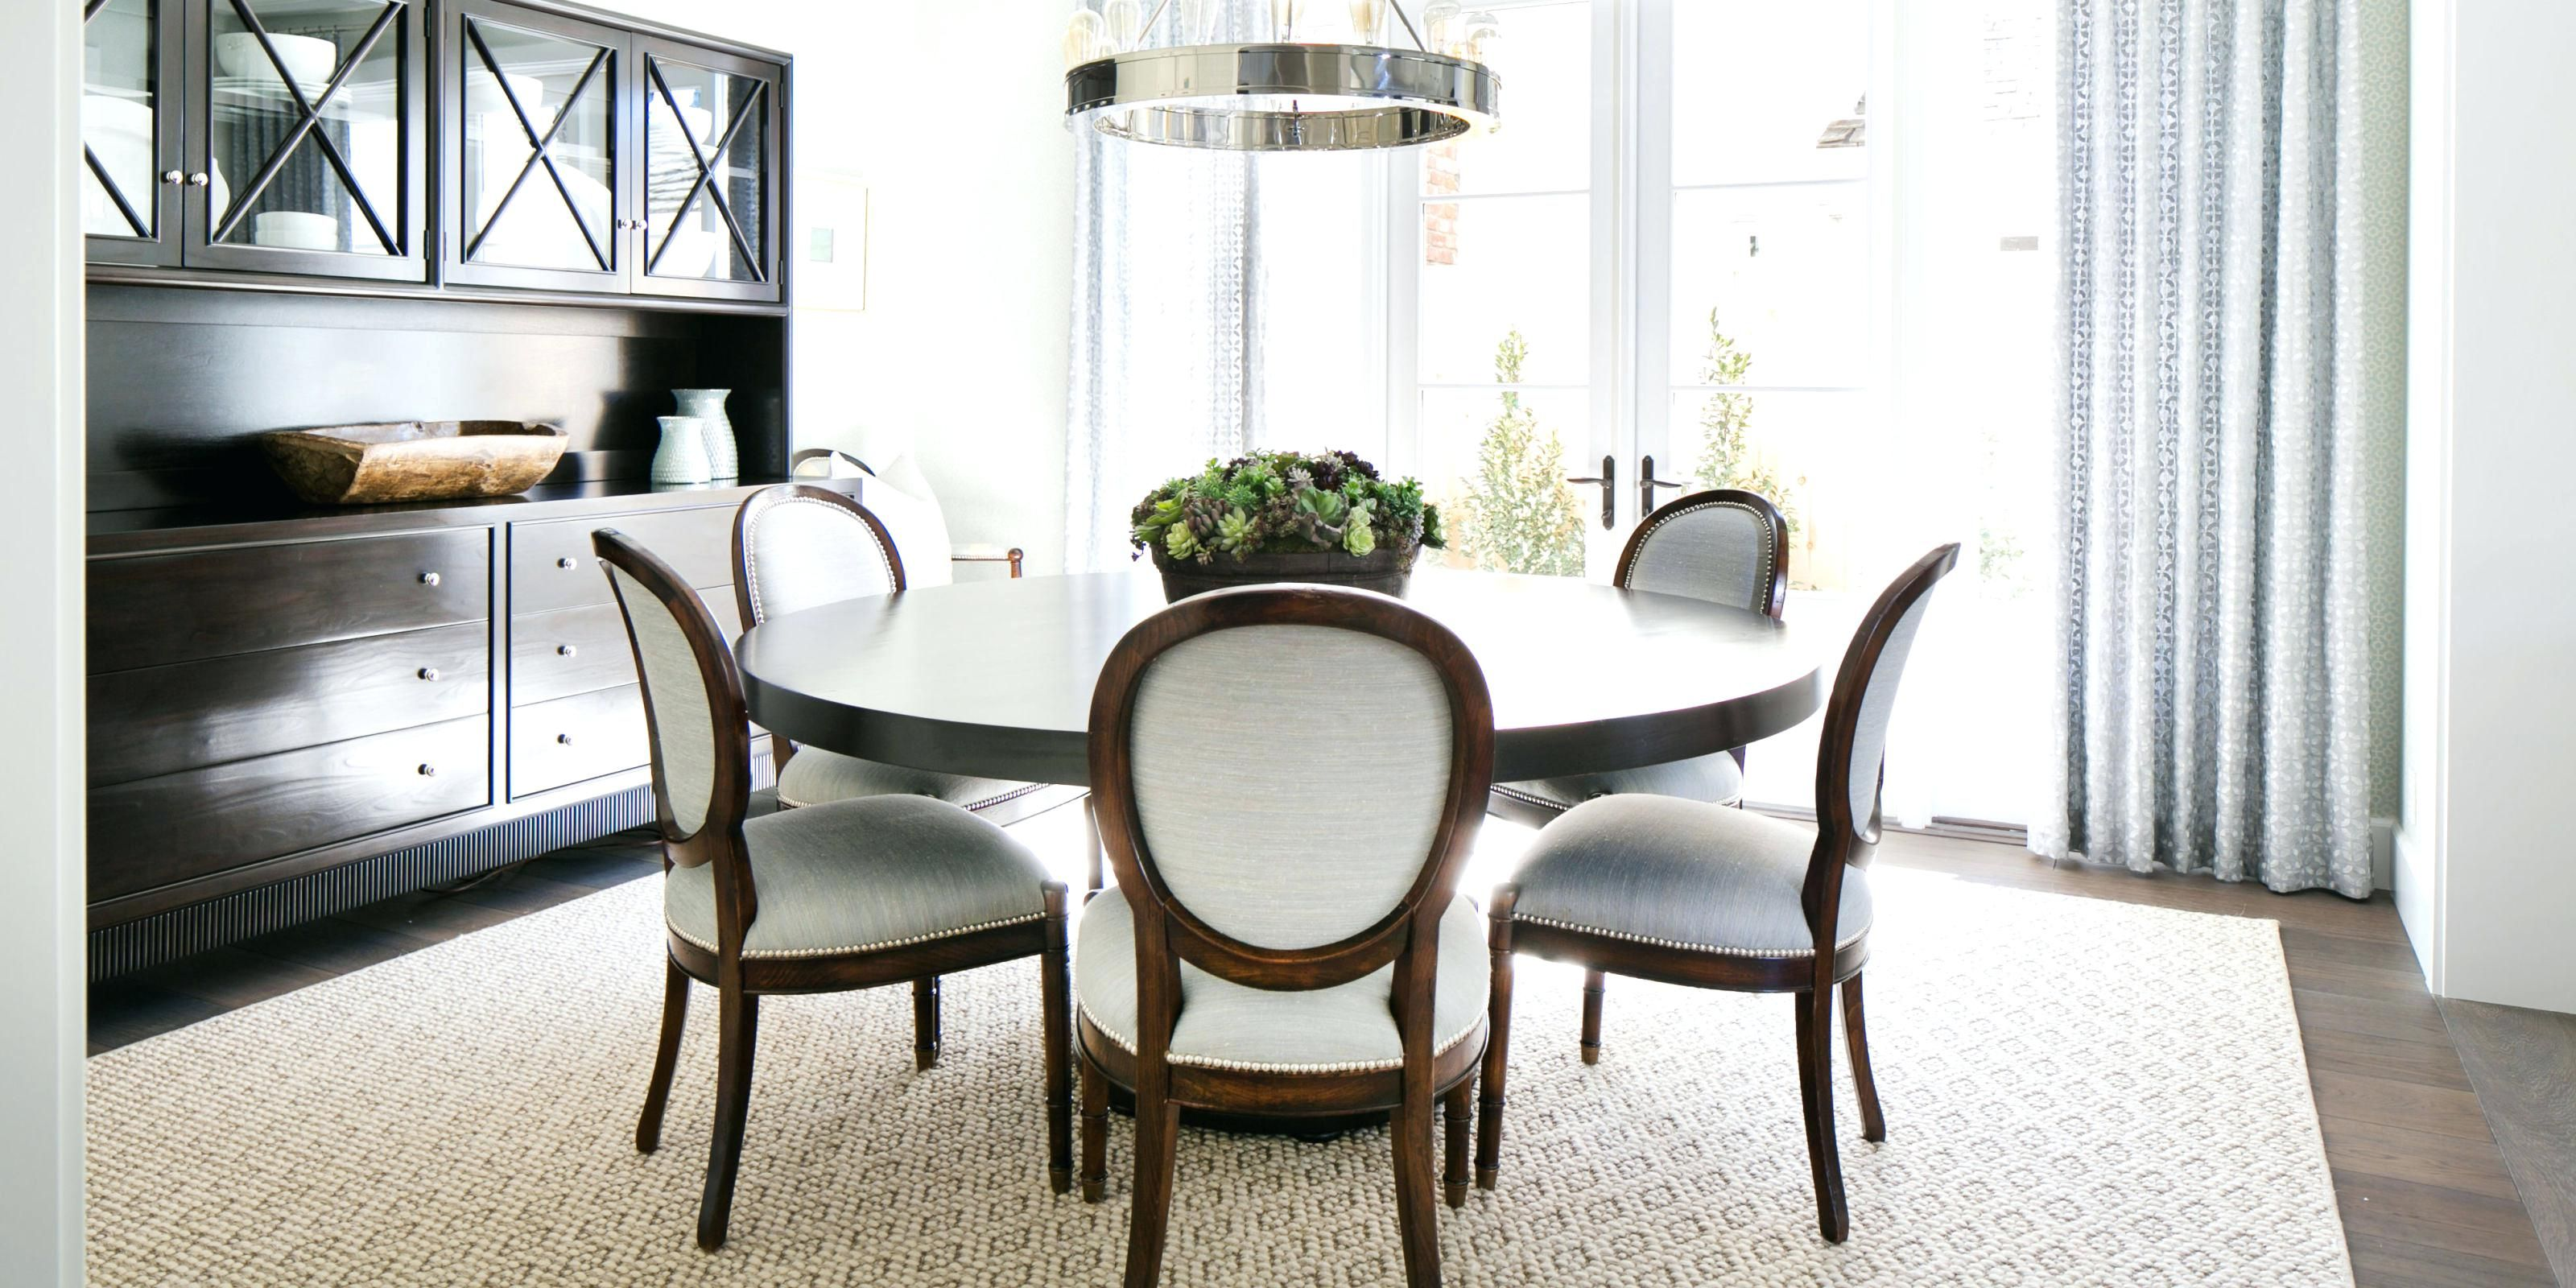 Best Of Kitchen Table And Chairs For Sale In Durban Fitness